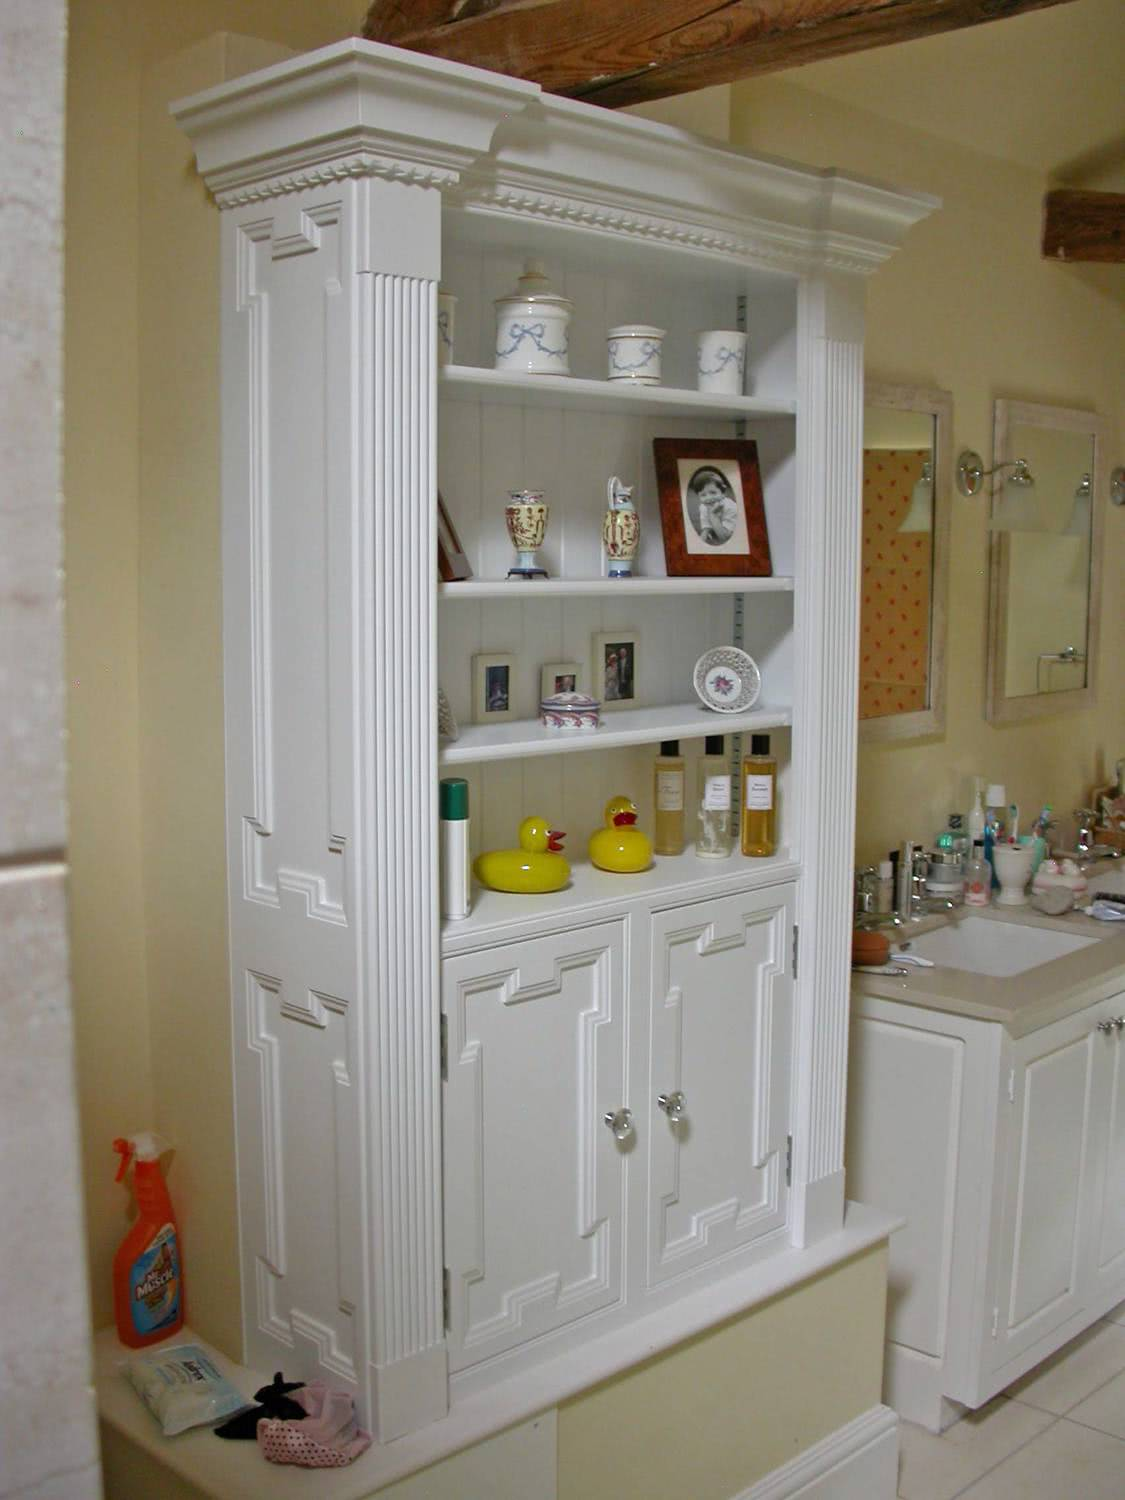 Handmade fitted bathroom cabinets with open shelves